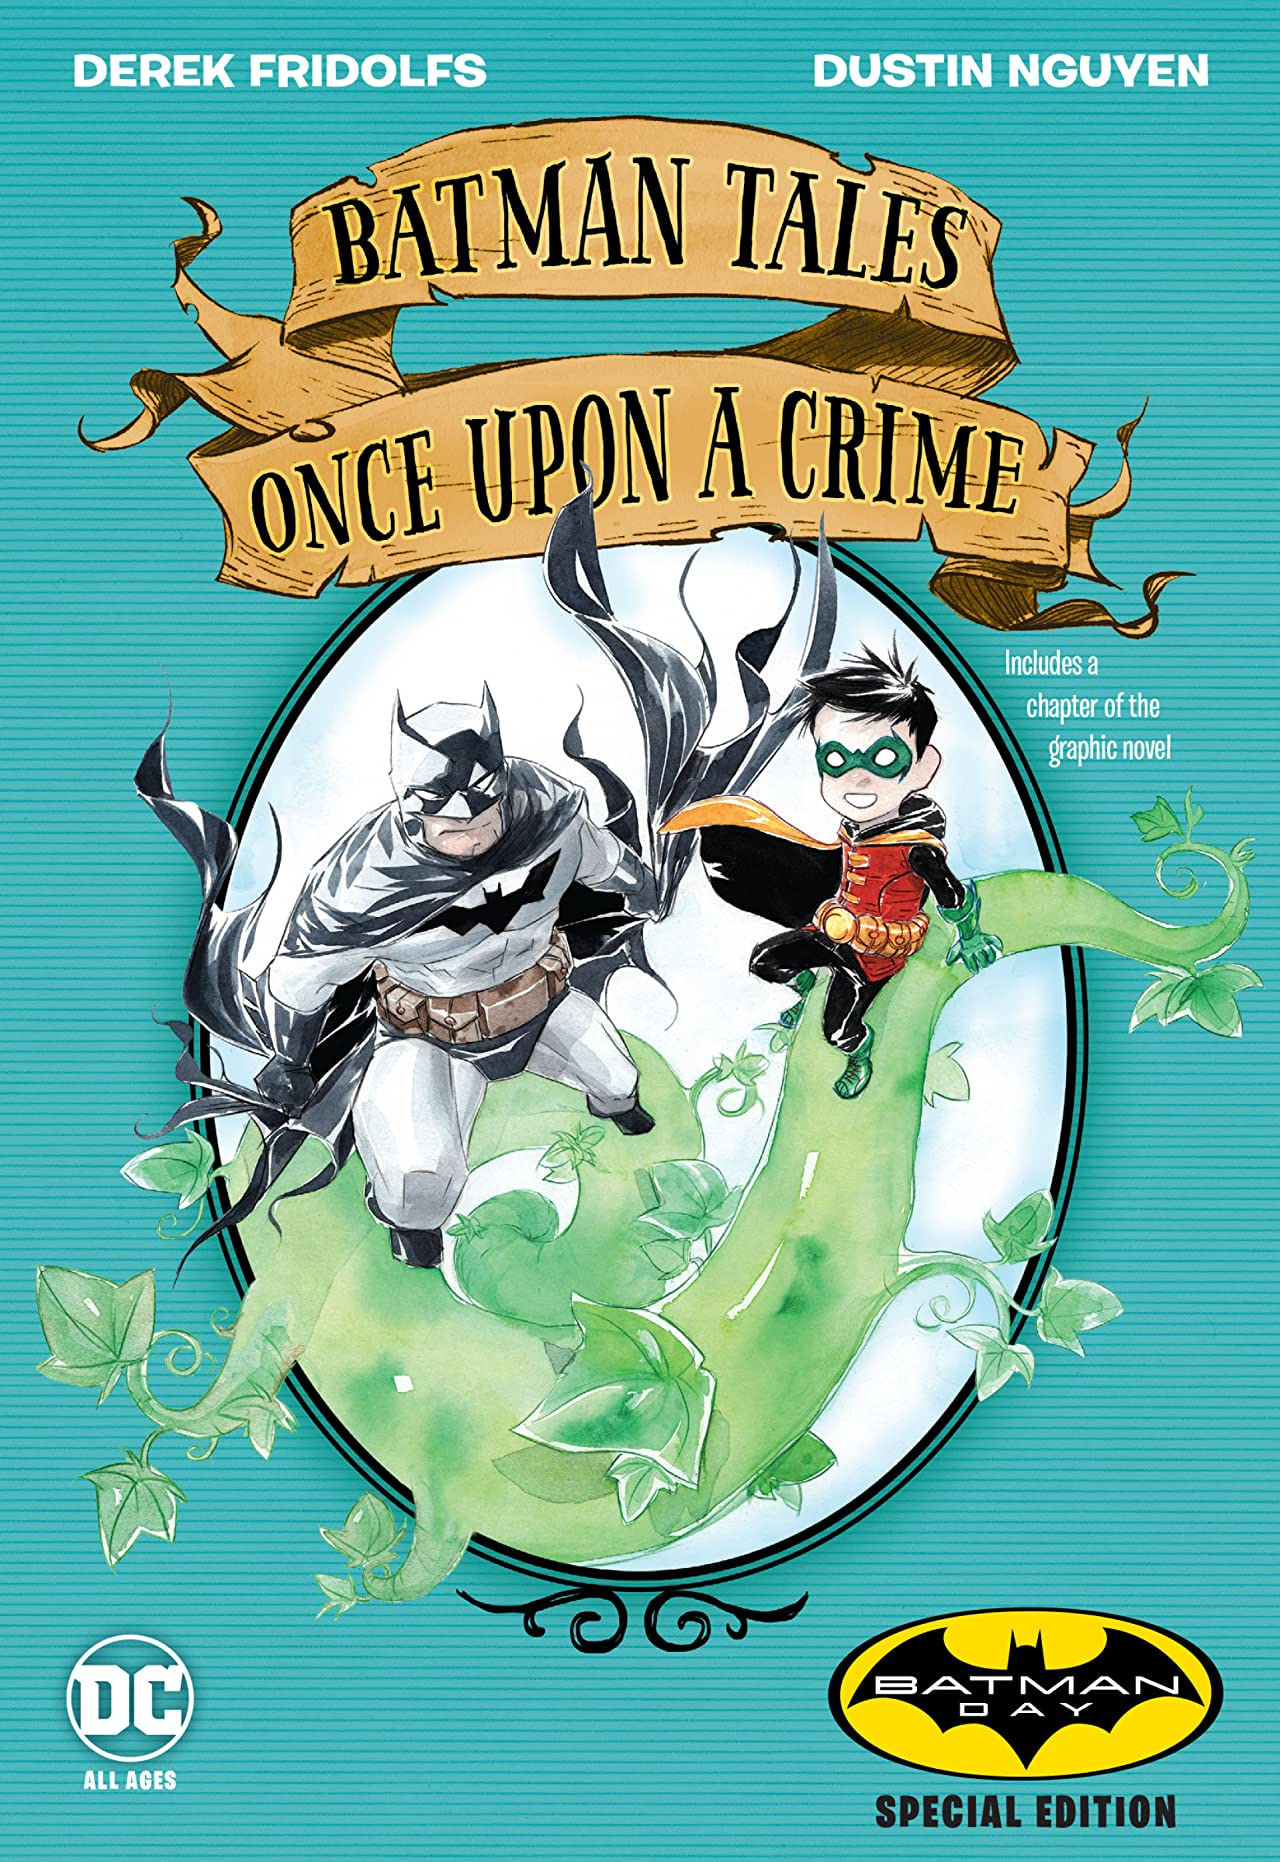 Batman Tales: Once Upon a Crime 2020 Batman Day Special Edition #1